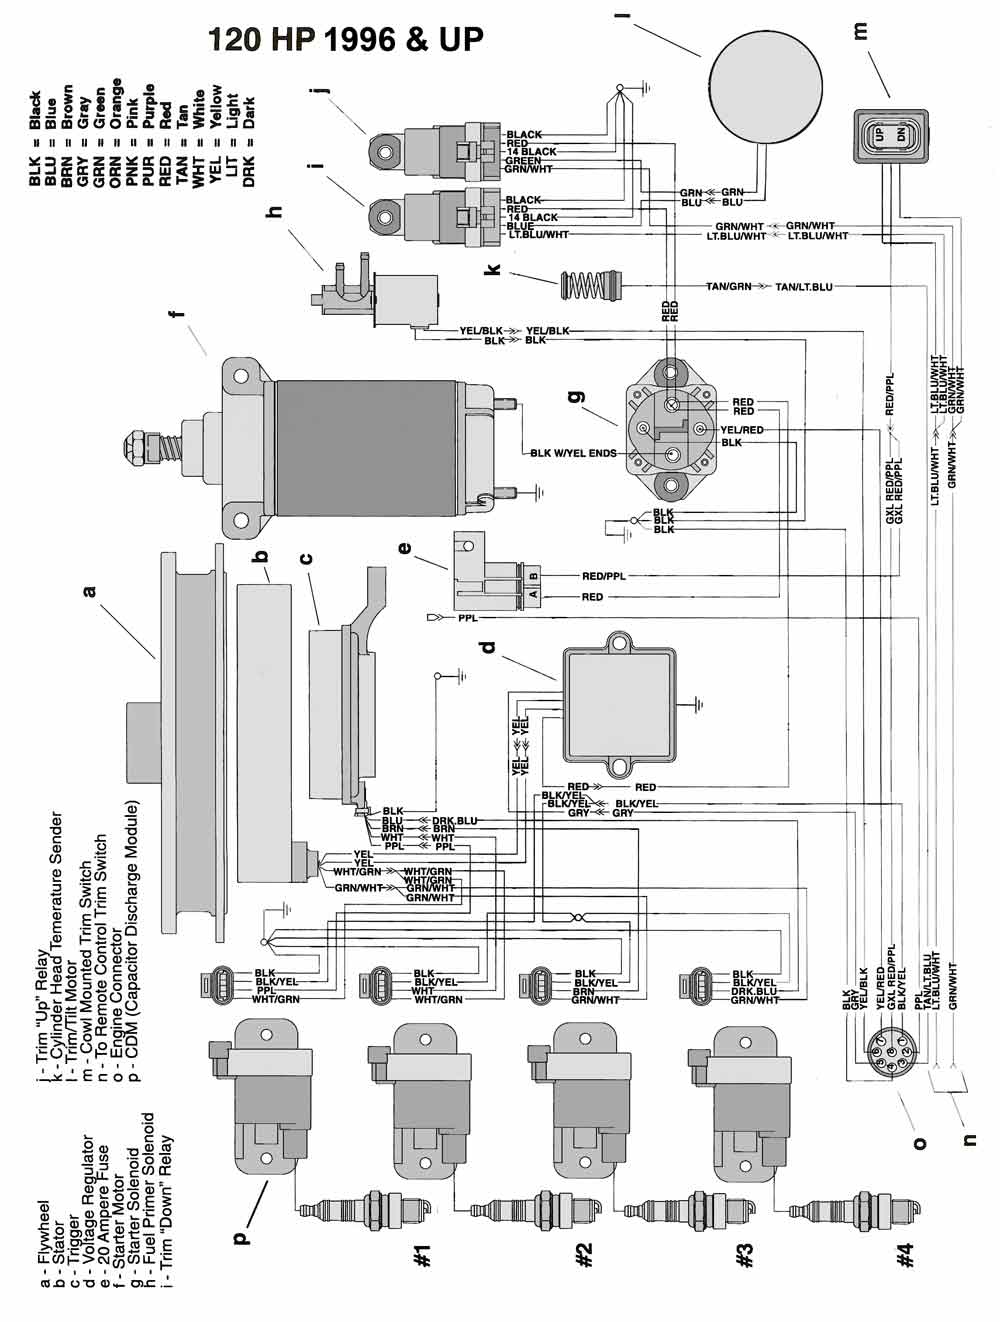 Force Outboard Ignition Switch Wiring Diagram Just Another Pollak Mastertech Marine Chrysler Diagrams Rh Maxrules Com Johnson